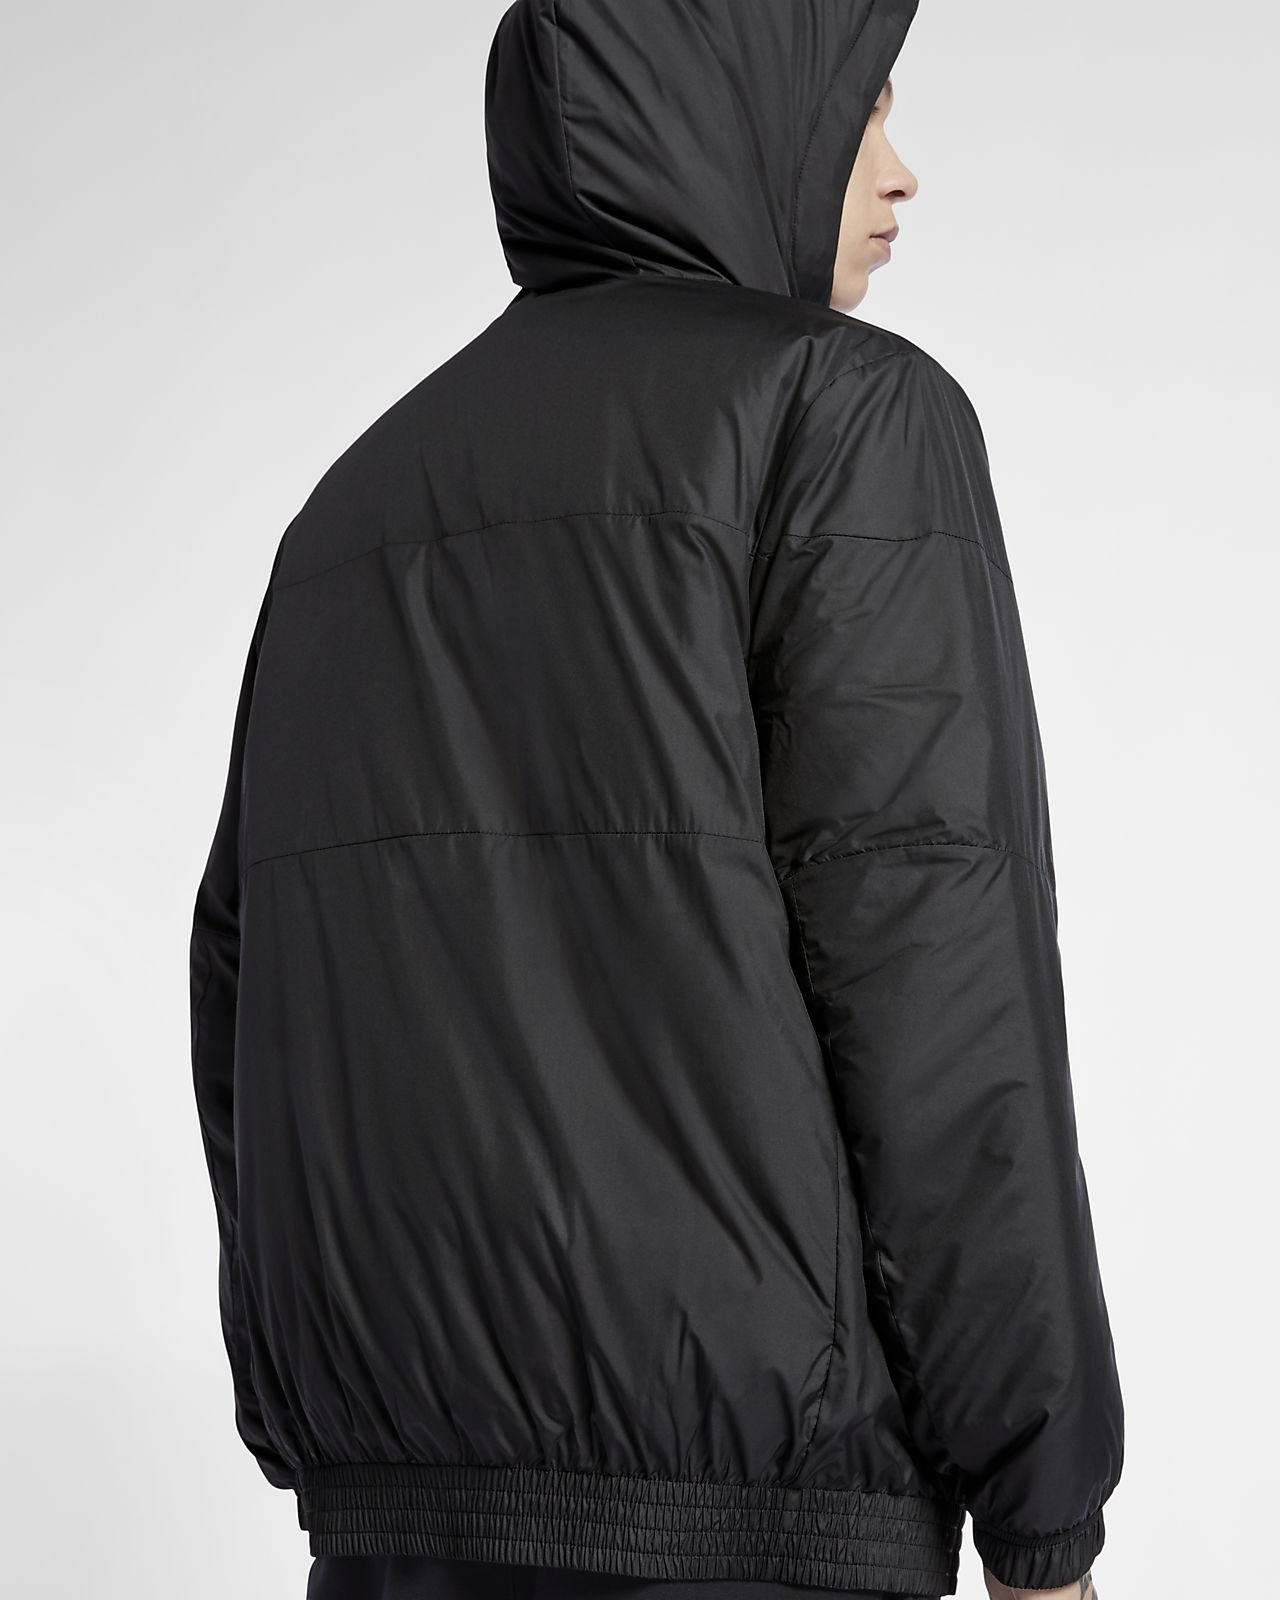 686fc831 Nike Sportswear Synthetic Fill Men's Hooded Jacket. Nike.com GB